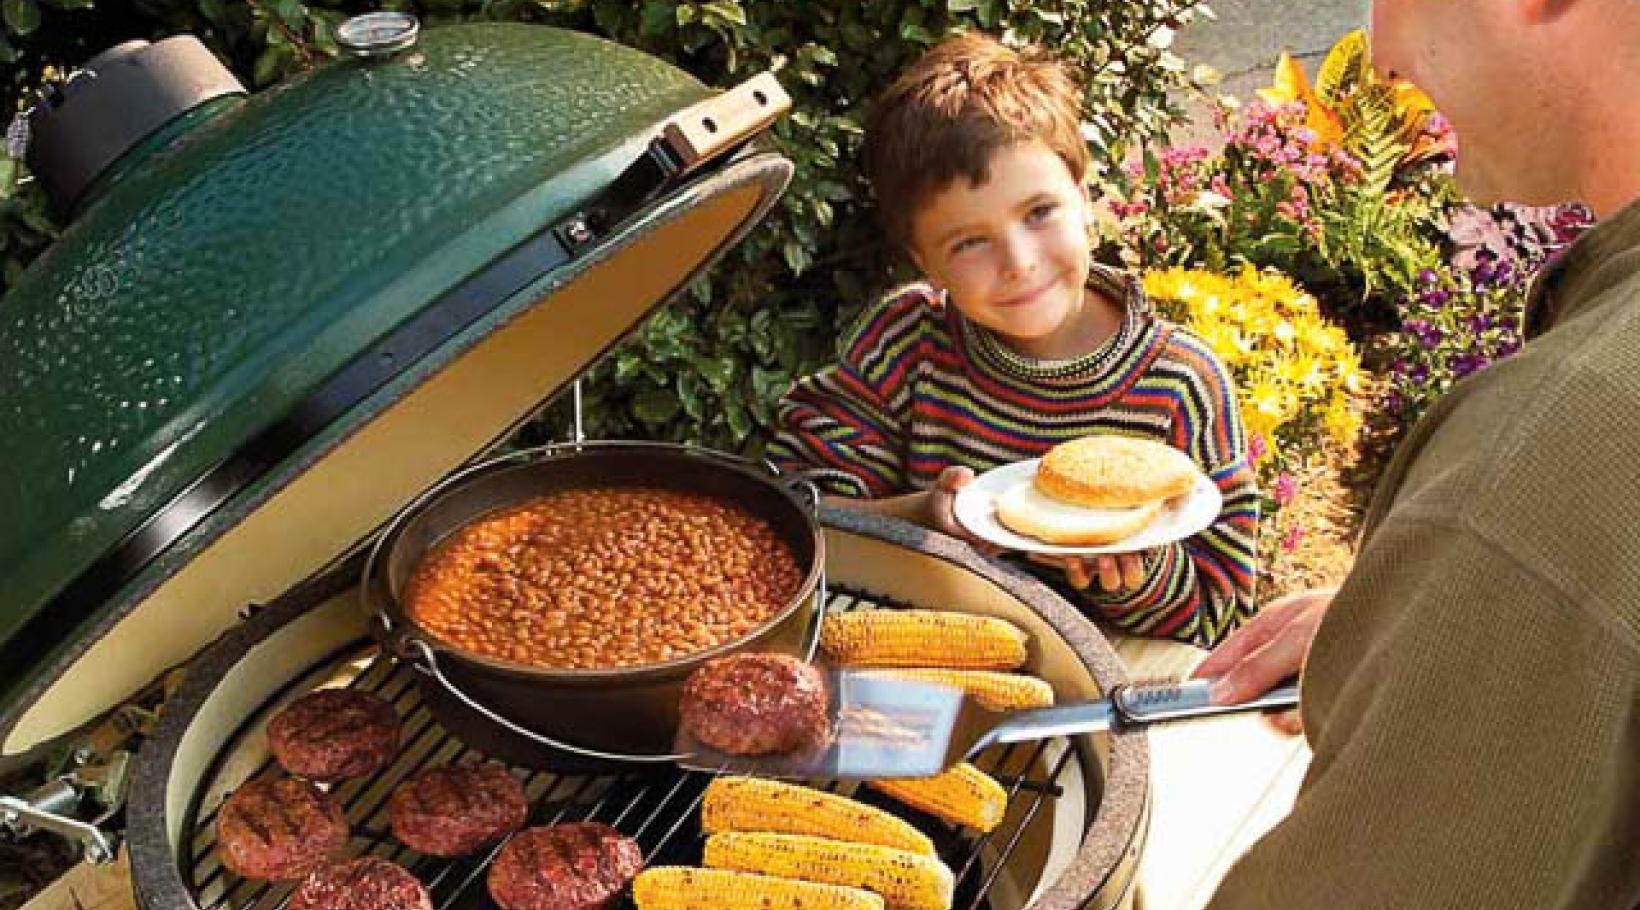 Man cooking food on Green Egg Grill